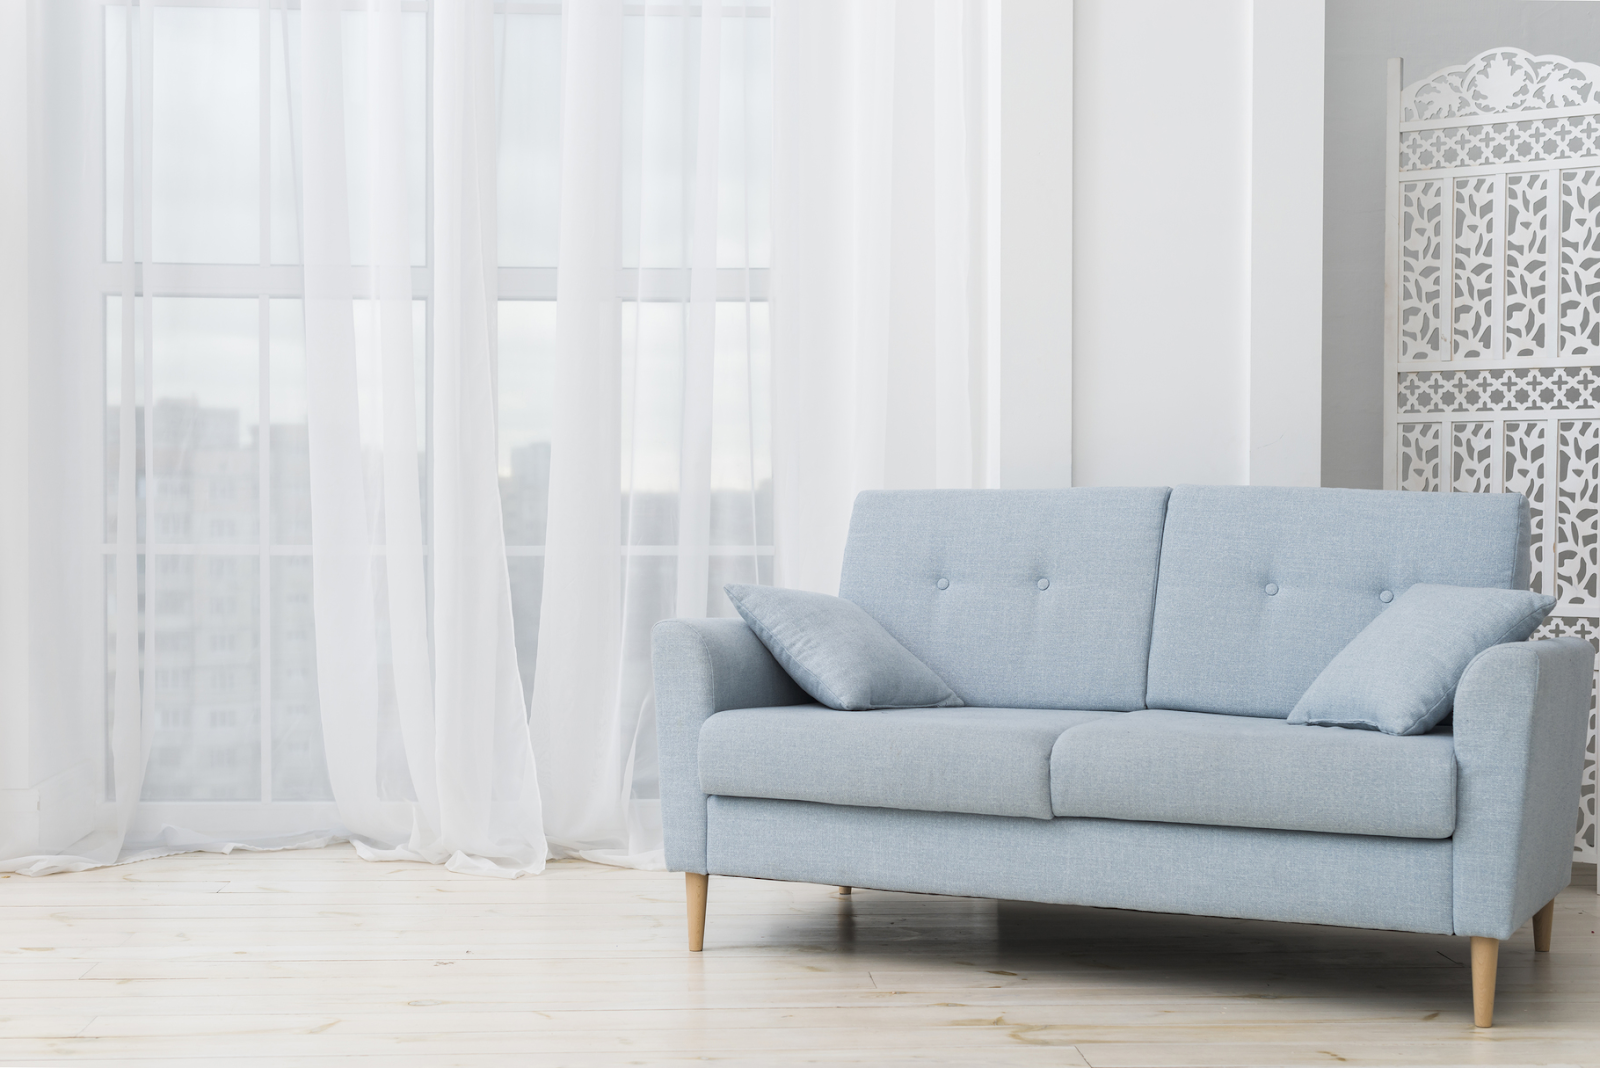 teal fabric sofa with white curtains background